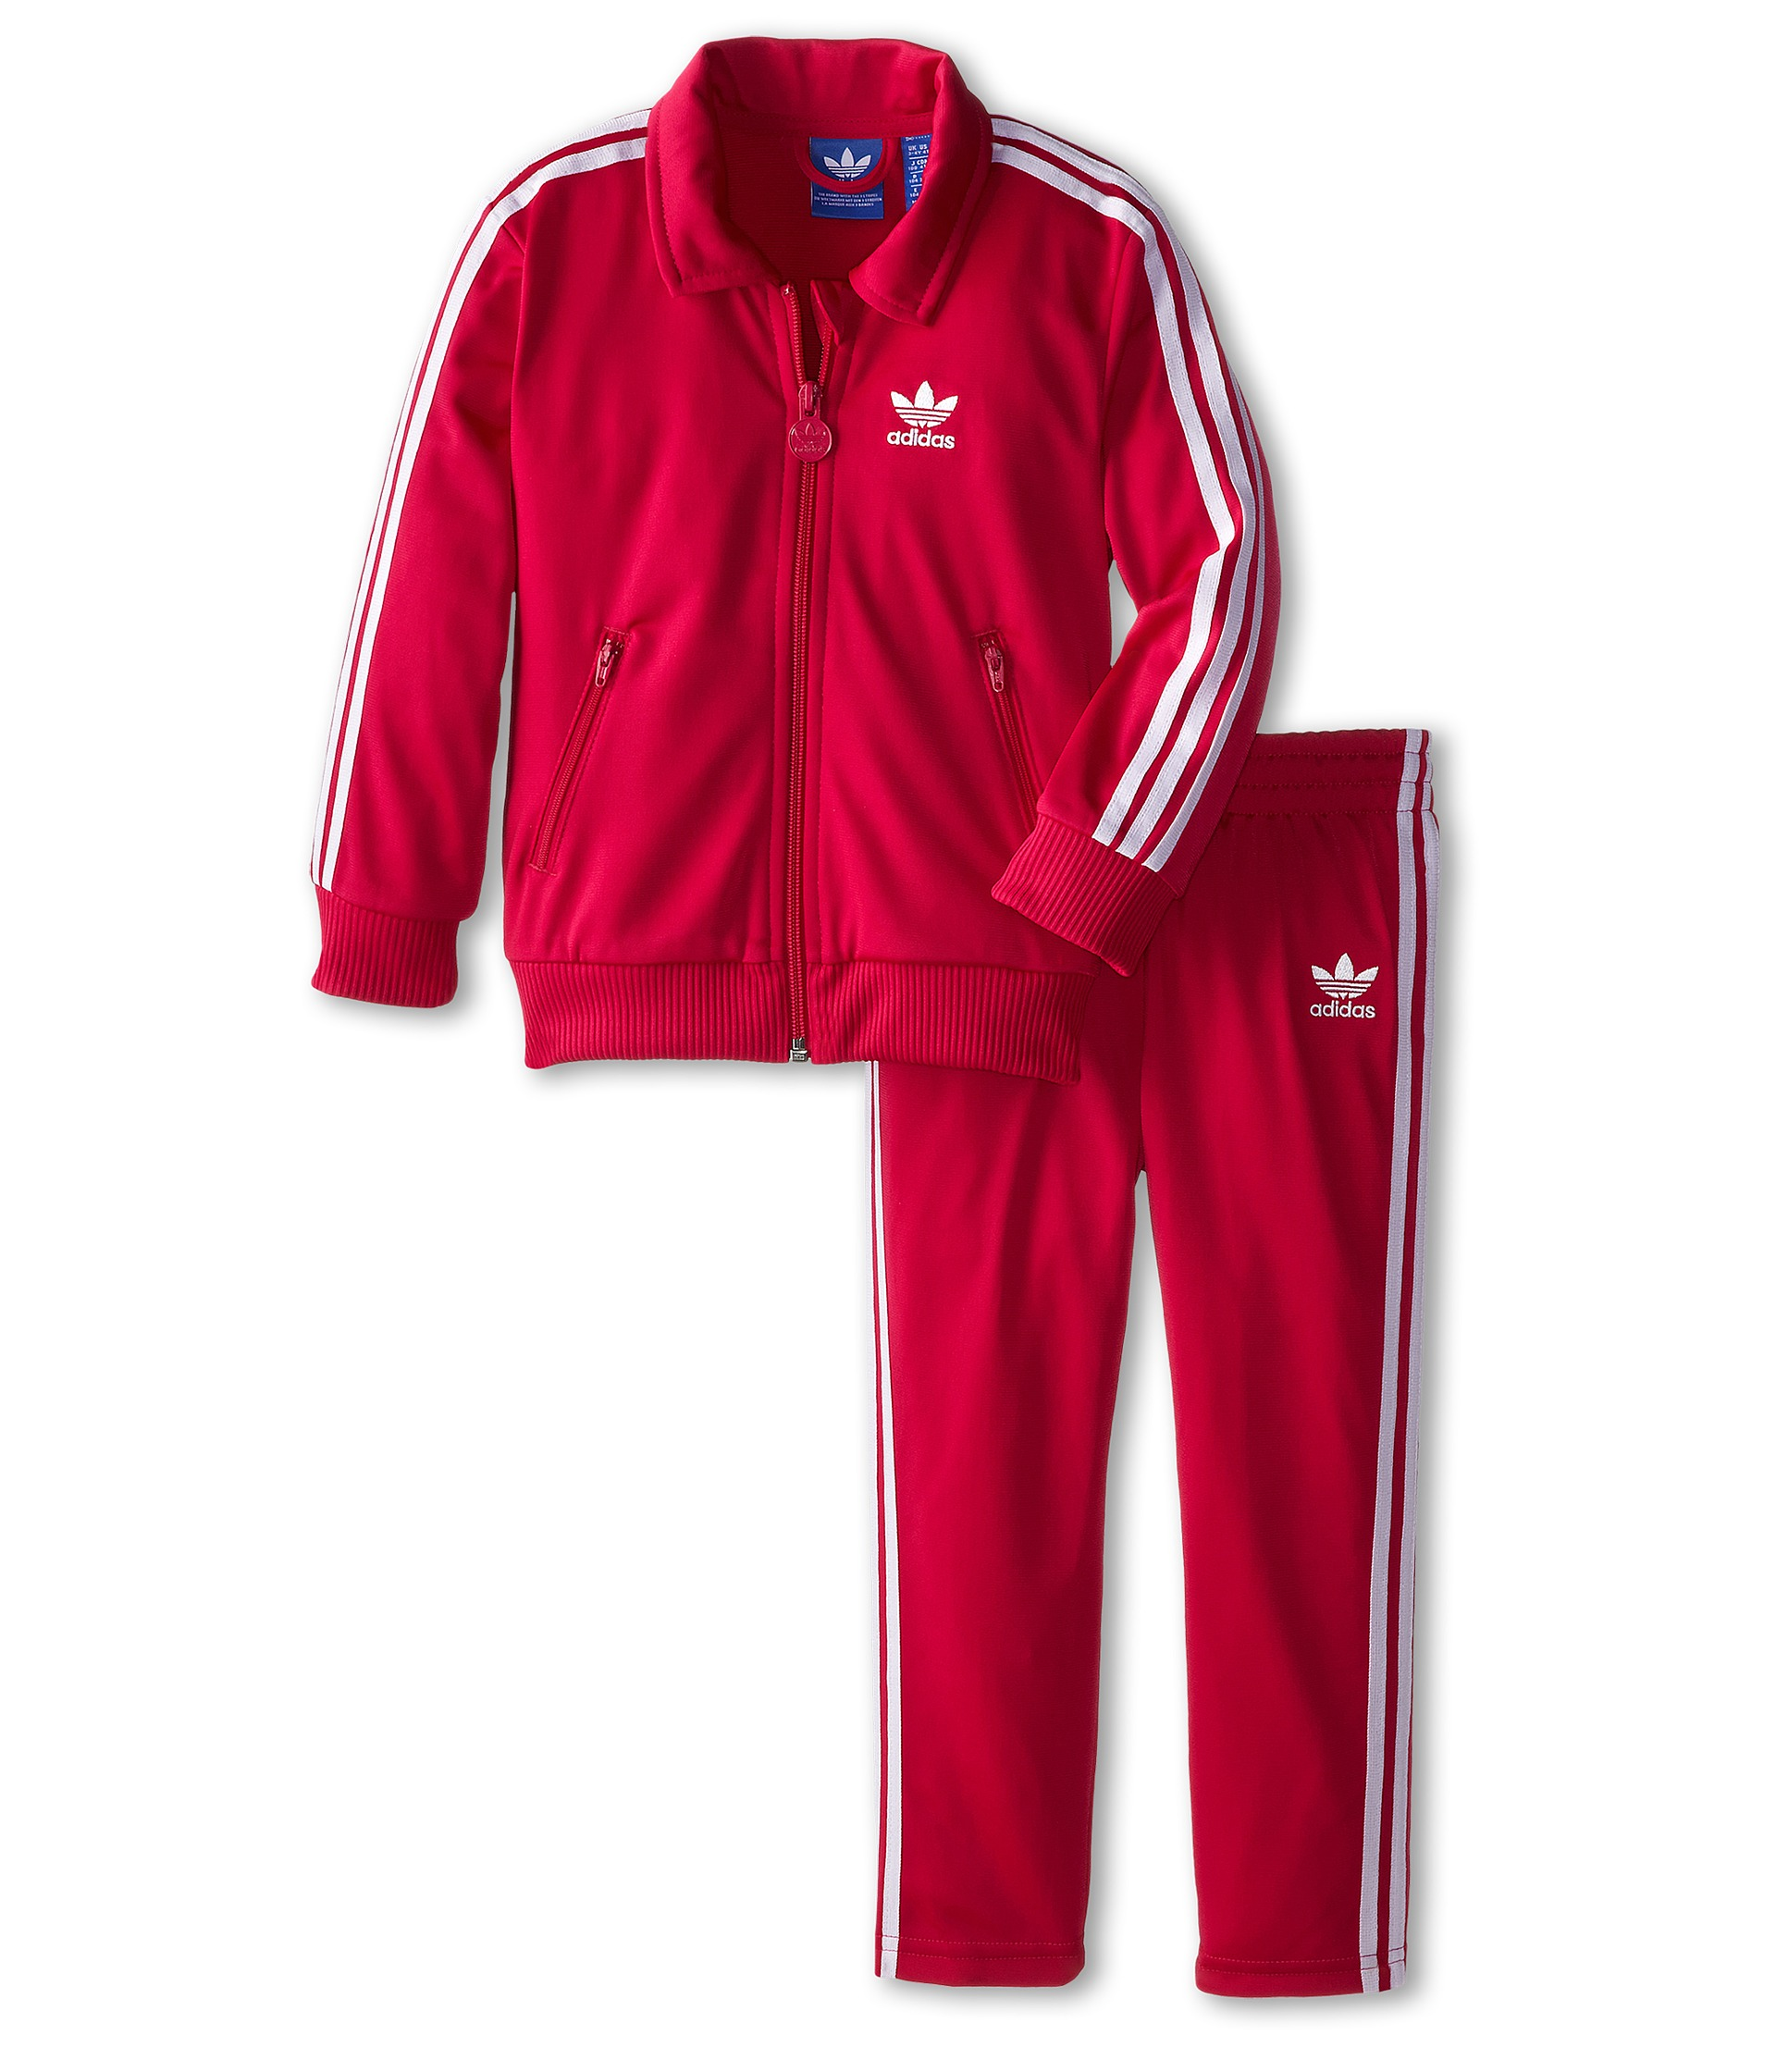 kids adidas jumpsuits. Shop designer items by Adidas online. Here she was in a foreign land, unable to trust the man she thought she loved. Here she was in a foreign land, possibly pregnant by a man who'd admitted he was obsessed with her.